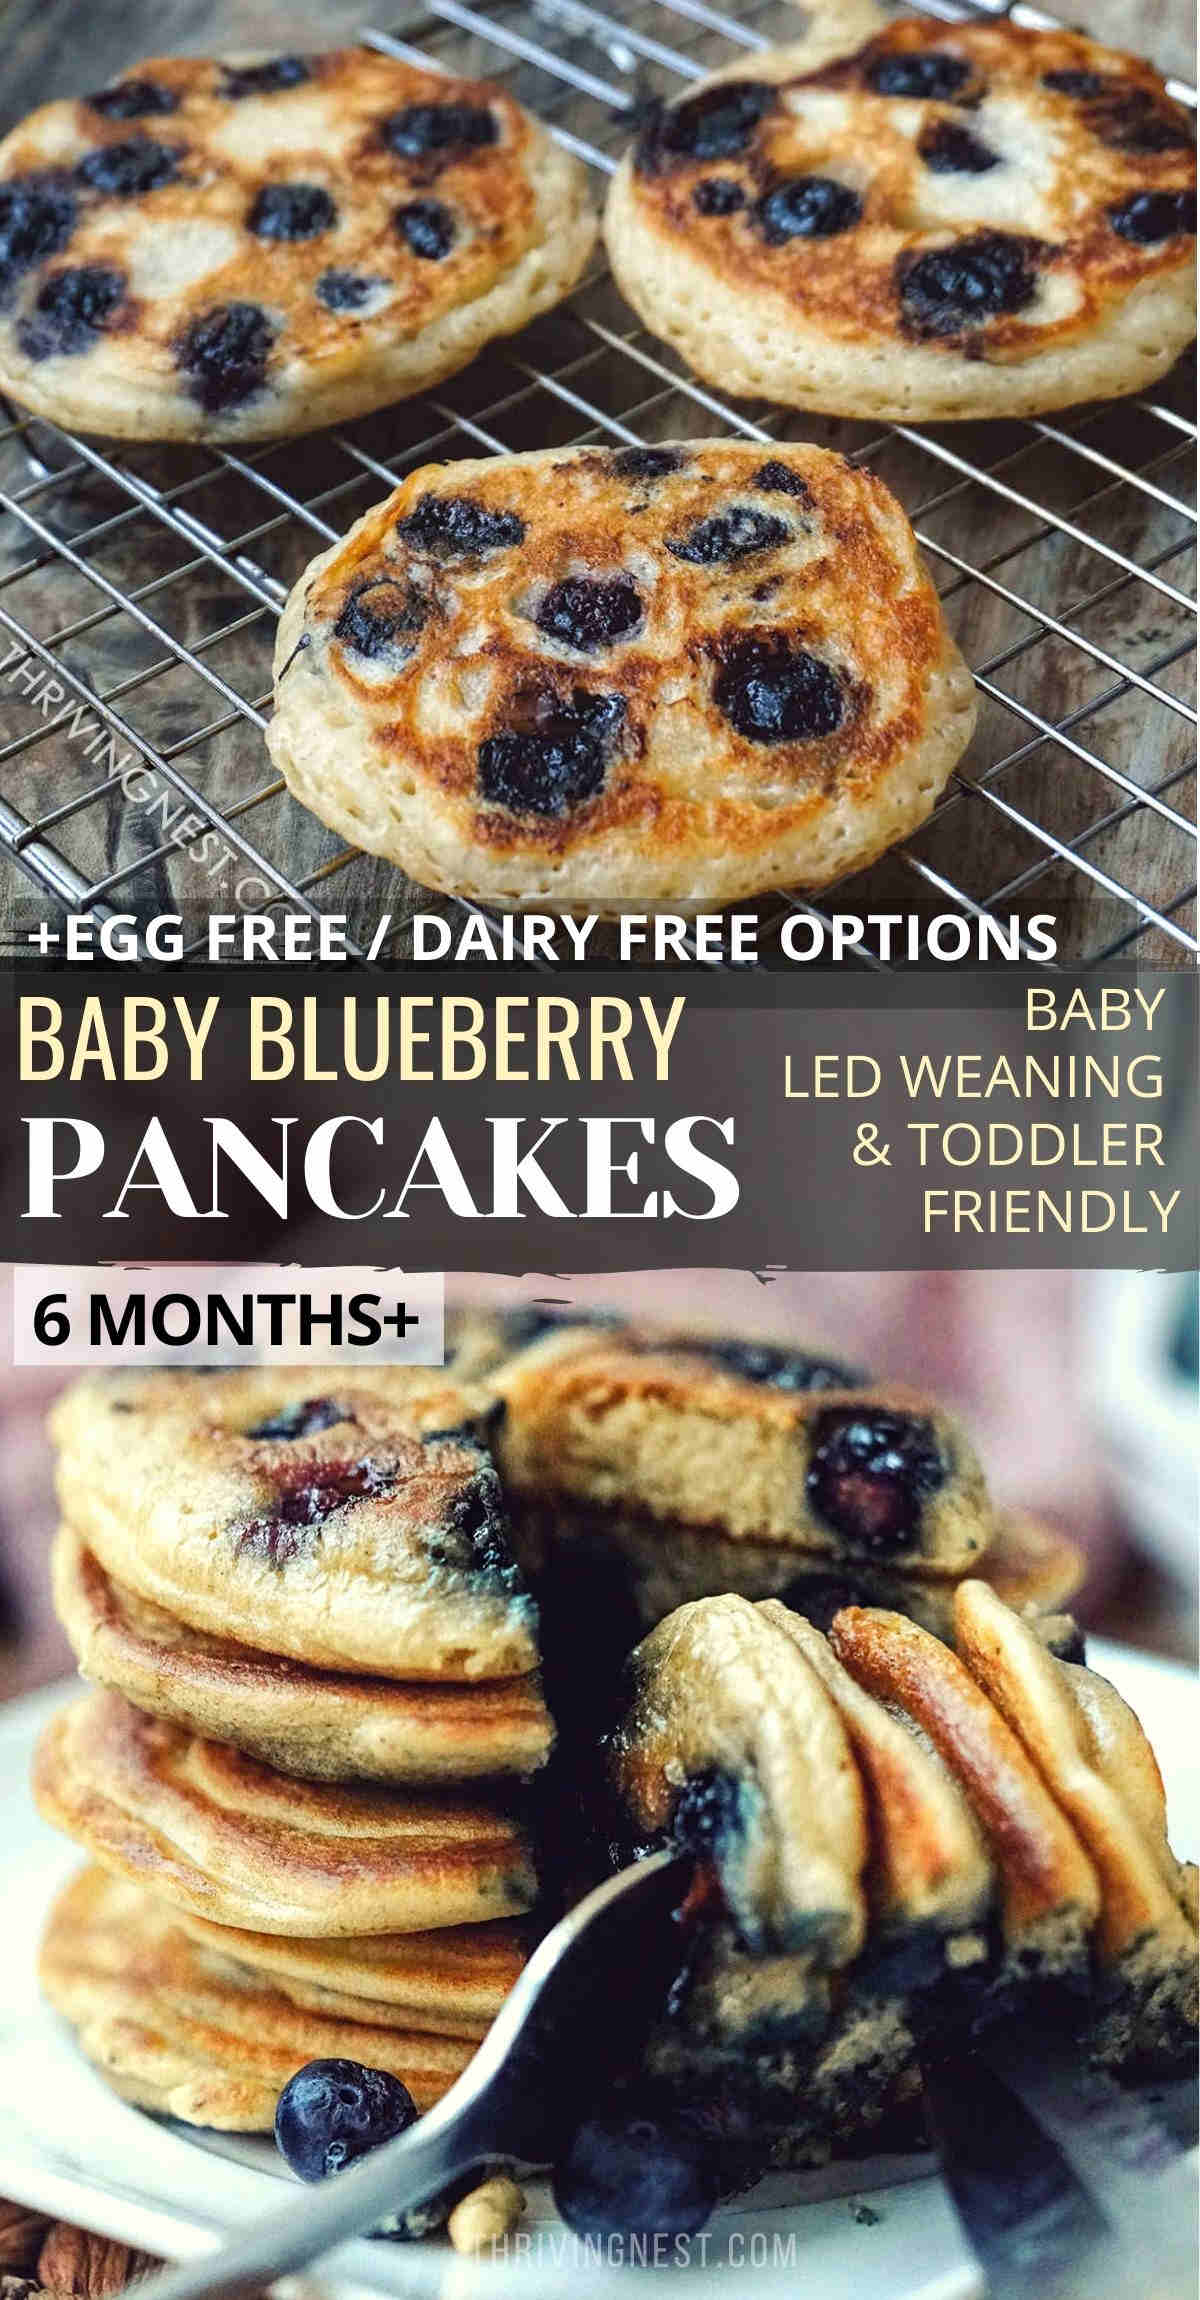 Blueberry pancakes for baby (6 months+) toddlers and older kids, suitable for baby led weaning as well. This recipe for baby blueberry pancakes can be easily adapted to be gluten free, dairy free and egg free. #blueberry #pacakes #baby #babyledweaning #blw #blueberrypancakes #babypancakes #babyfood #babyfingerfood #breakfast #toddler